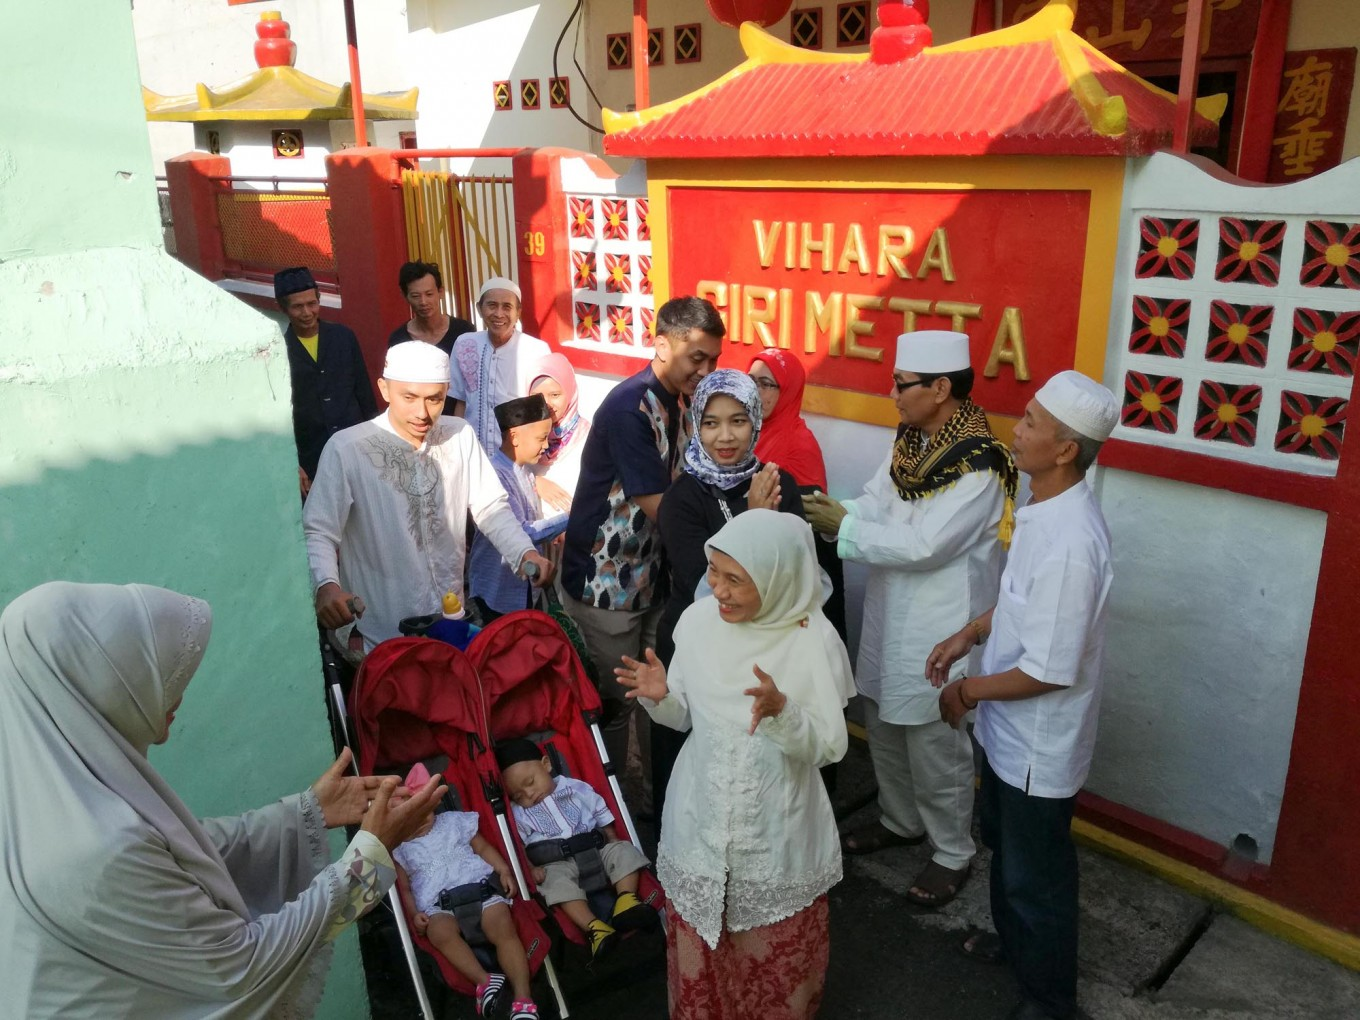 Muslims greet each other in front of a Buddhist temple after observing the Idul Fitri prayer on Gg. Hj Ruhana, Lengkong Kecil, Bandung, on Sunday, June 25, 2017. The people here live among religious diversity, as the 200-meter alley is home to three different houses of worship. JP/Arya Dipa